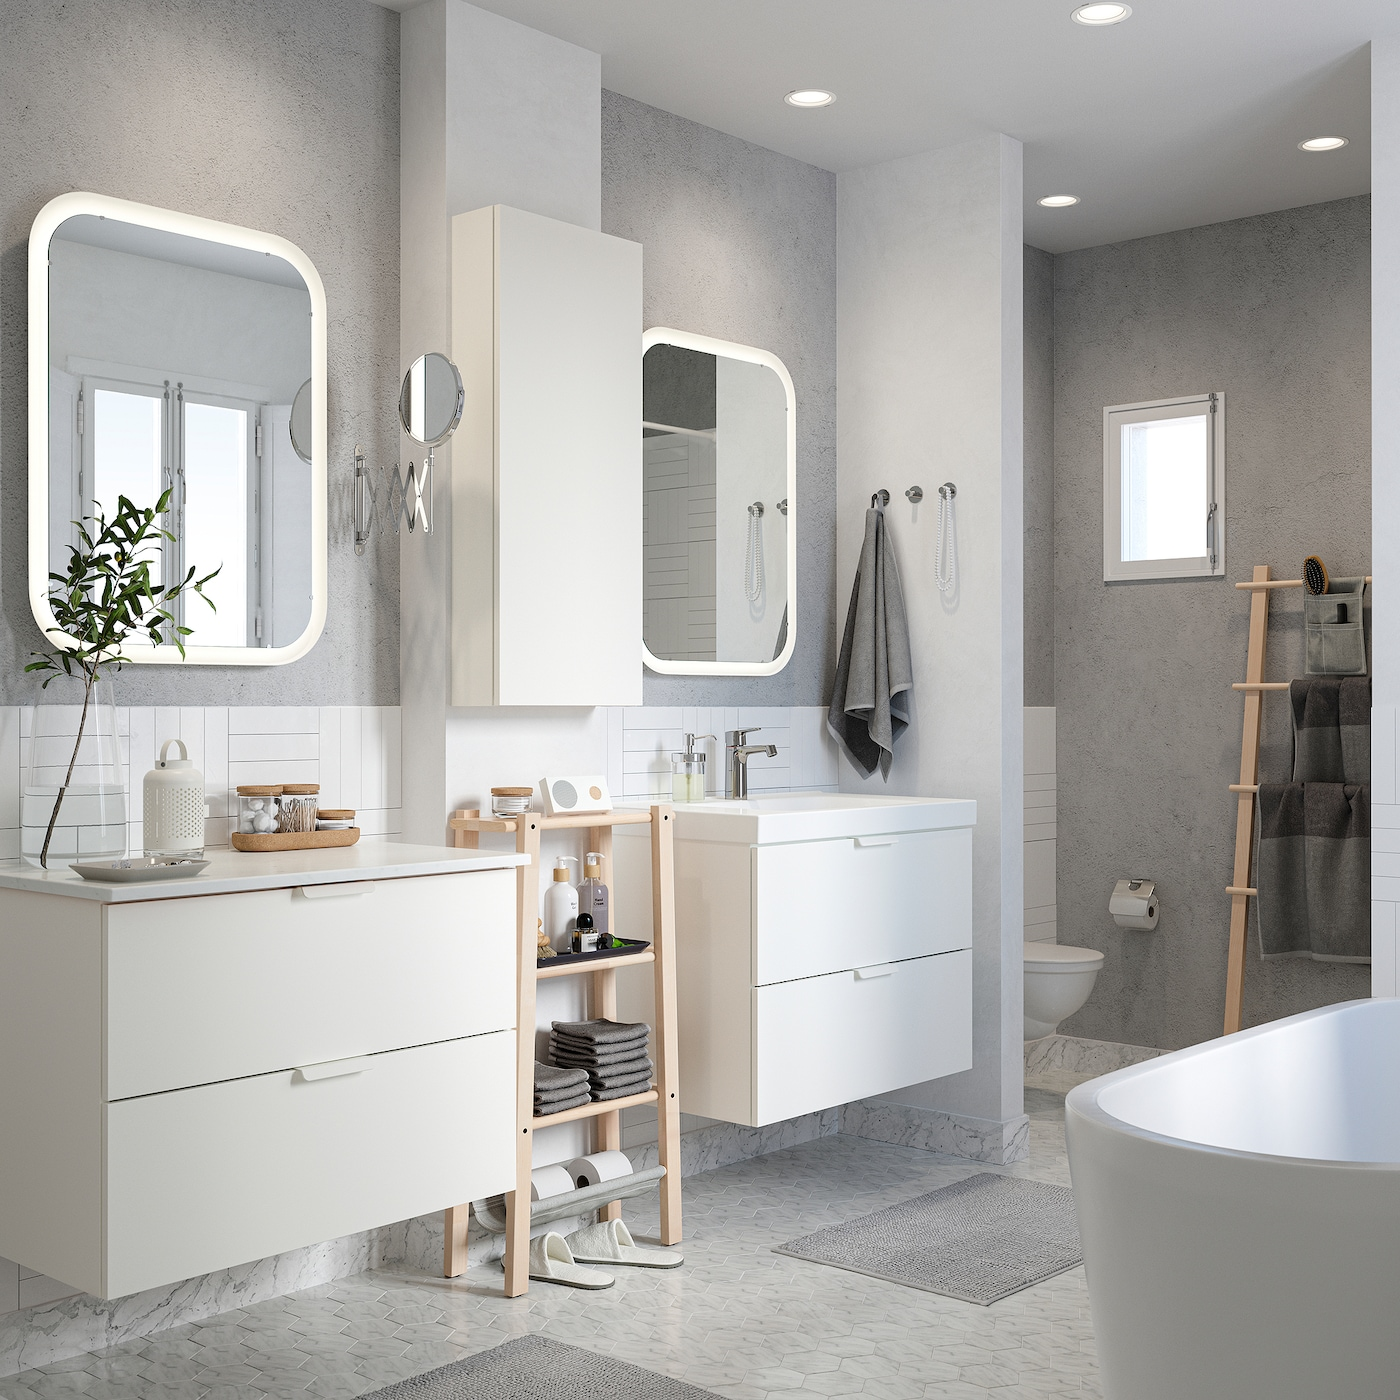 A stylish and serene bathroom - IKEA